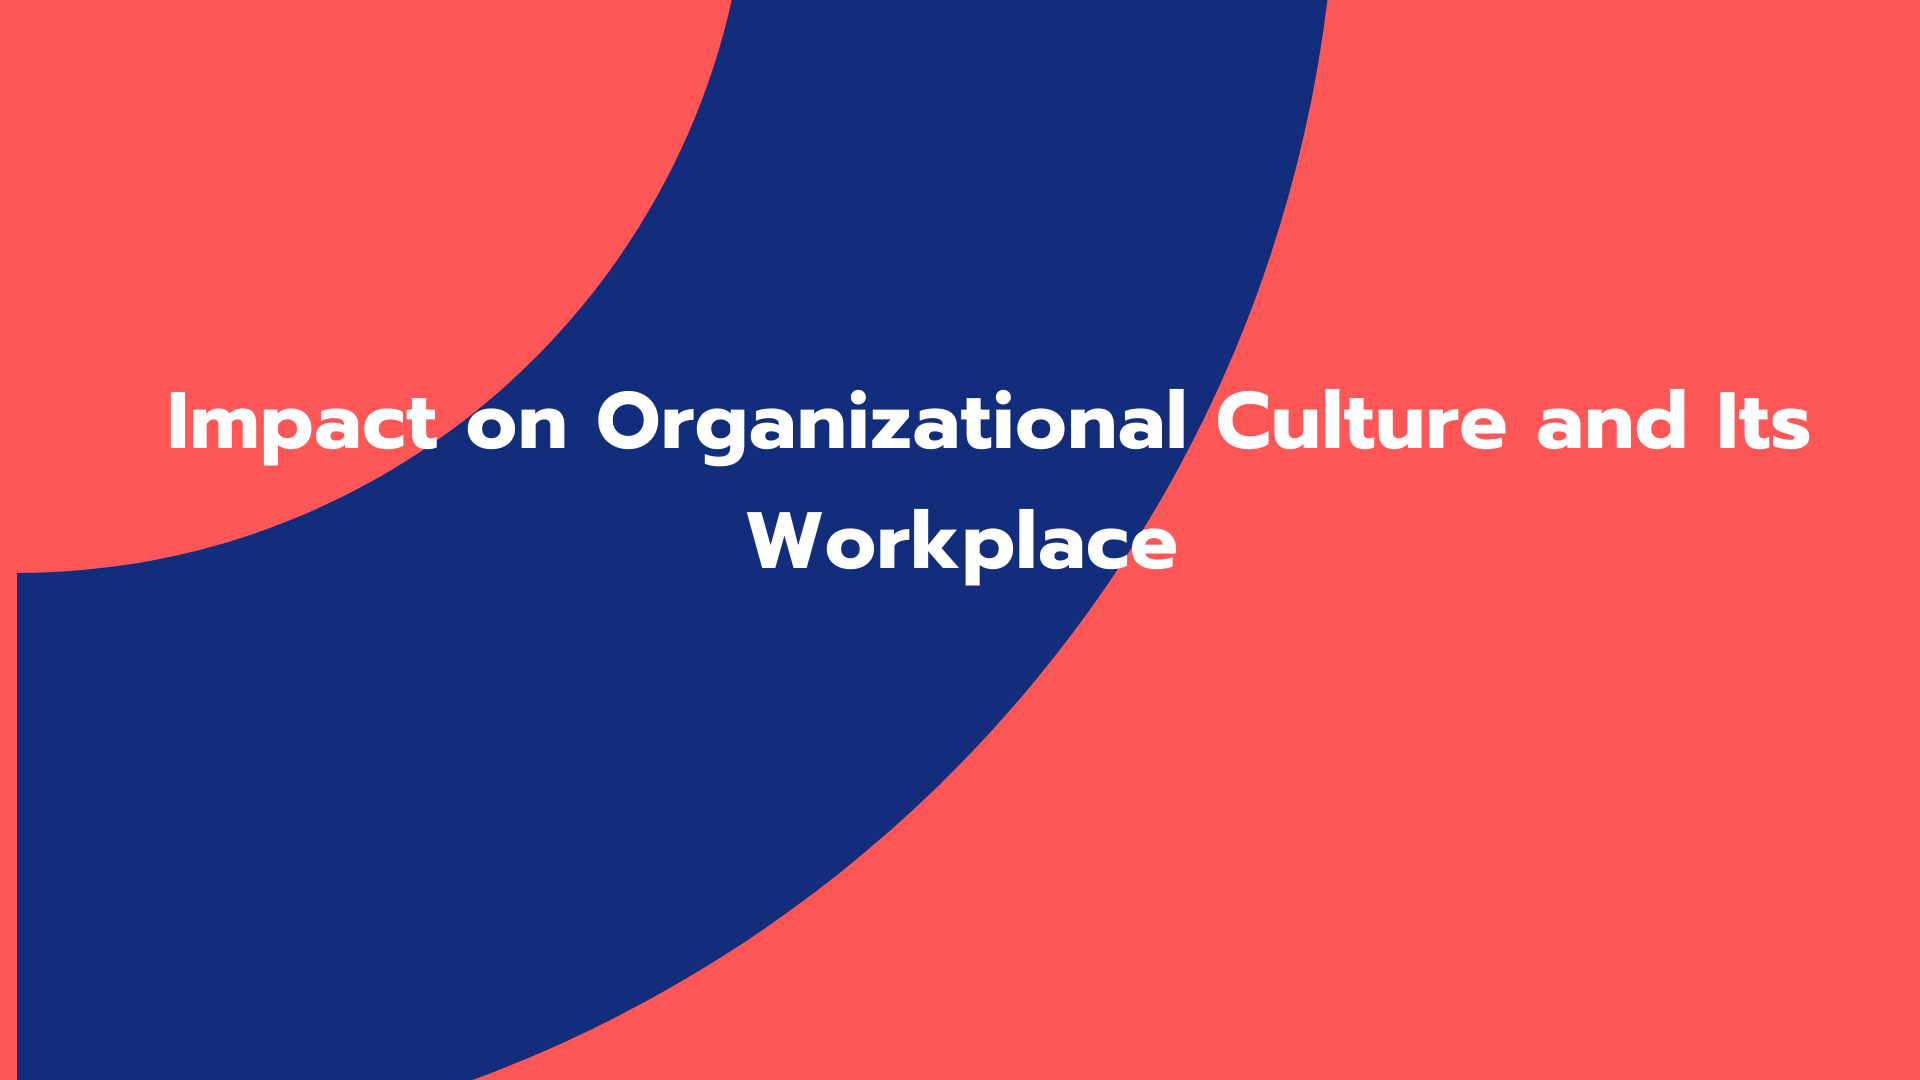 Impact on Organizational Culture and Its Workplace